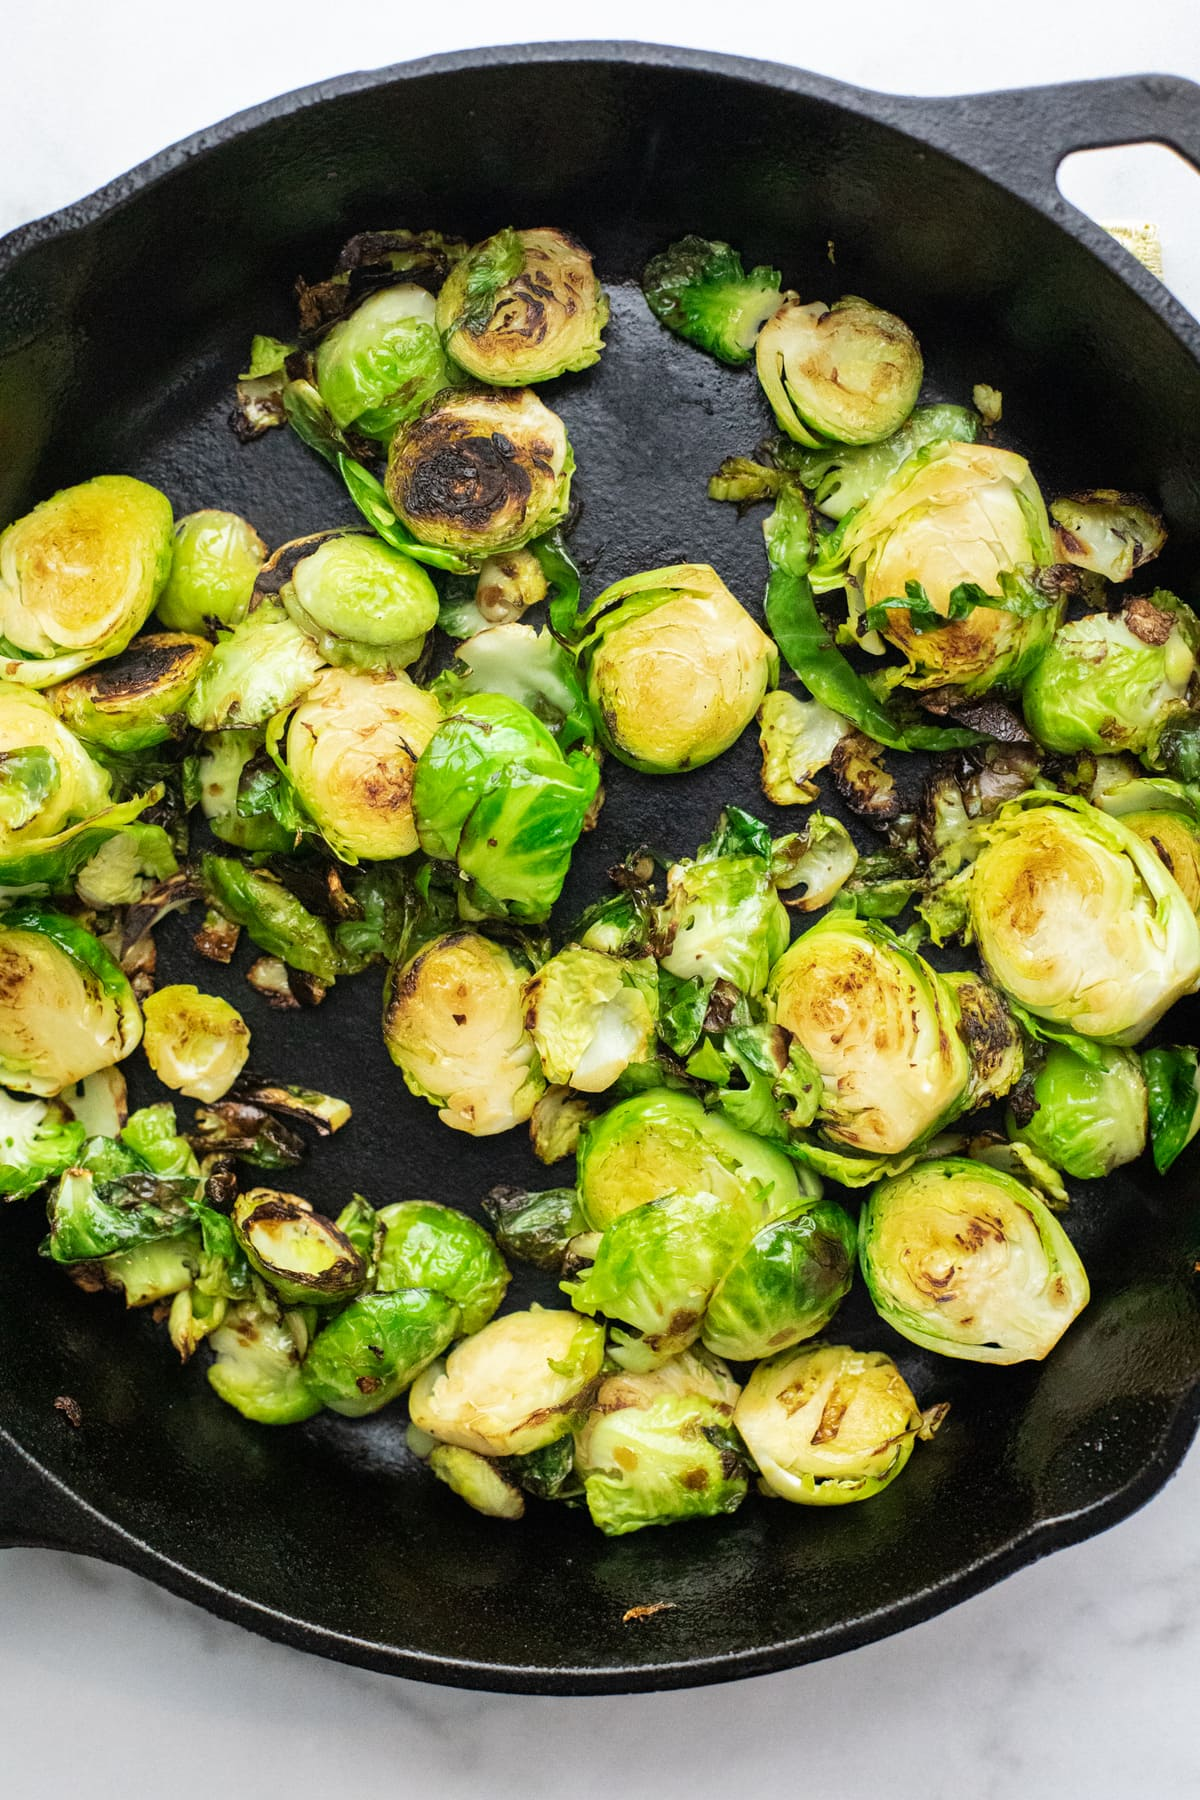 Sliced brussels sprouts being sautéed in black cast iron skillet.